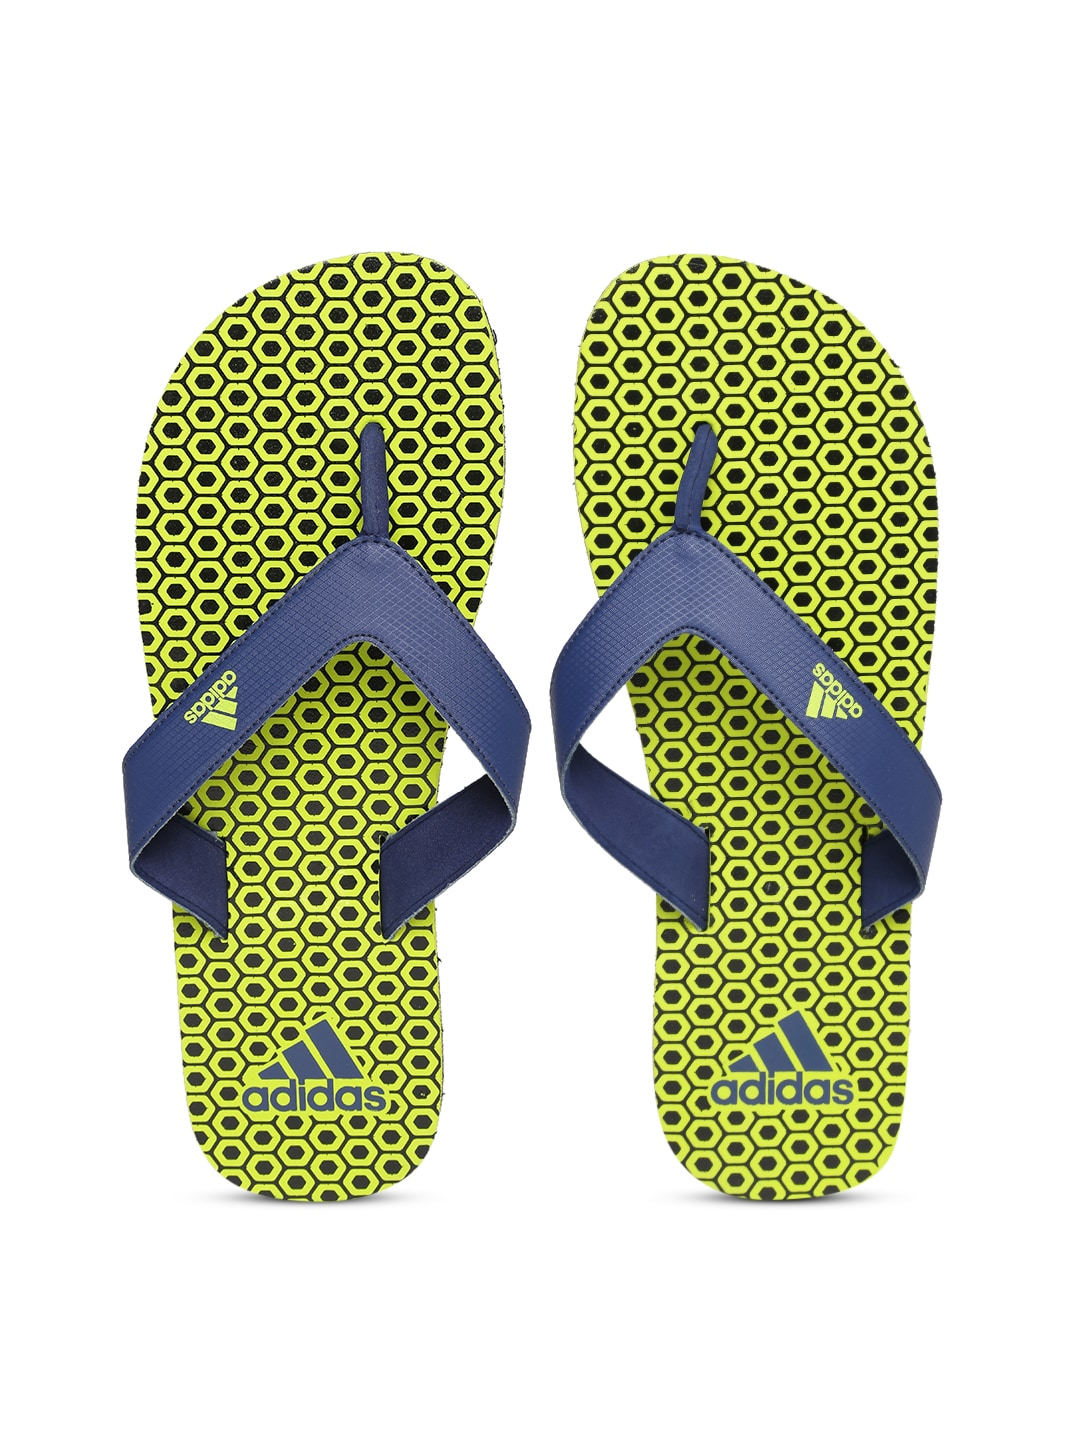 cd8729770dcdf0 Adidas Men Flip Flops Sandal - Buy Adidas Men Flip Flops Sandal online in  India